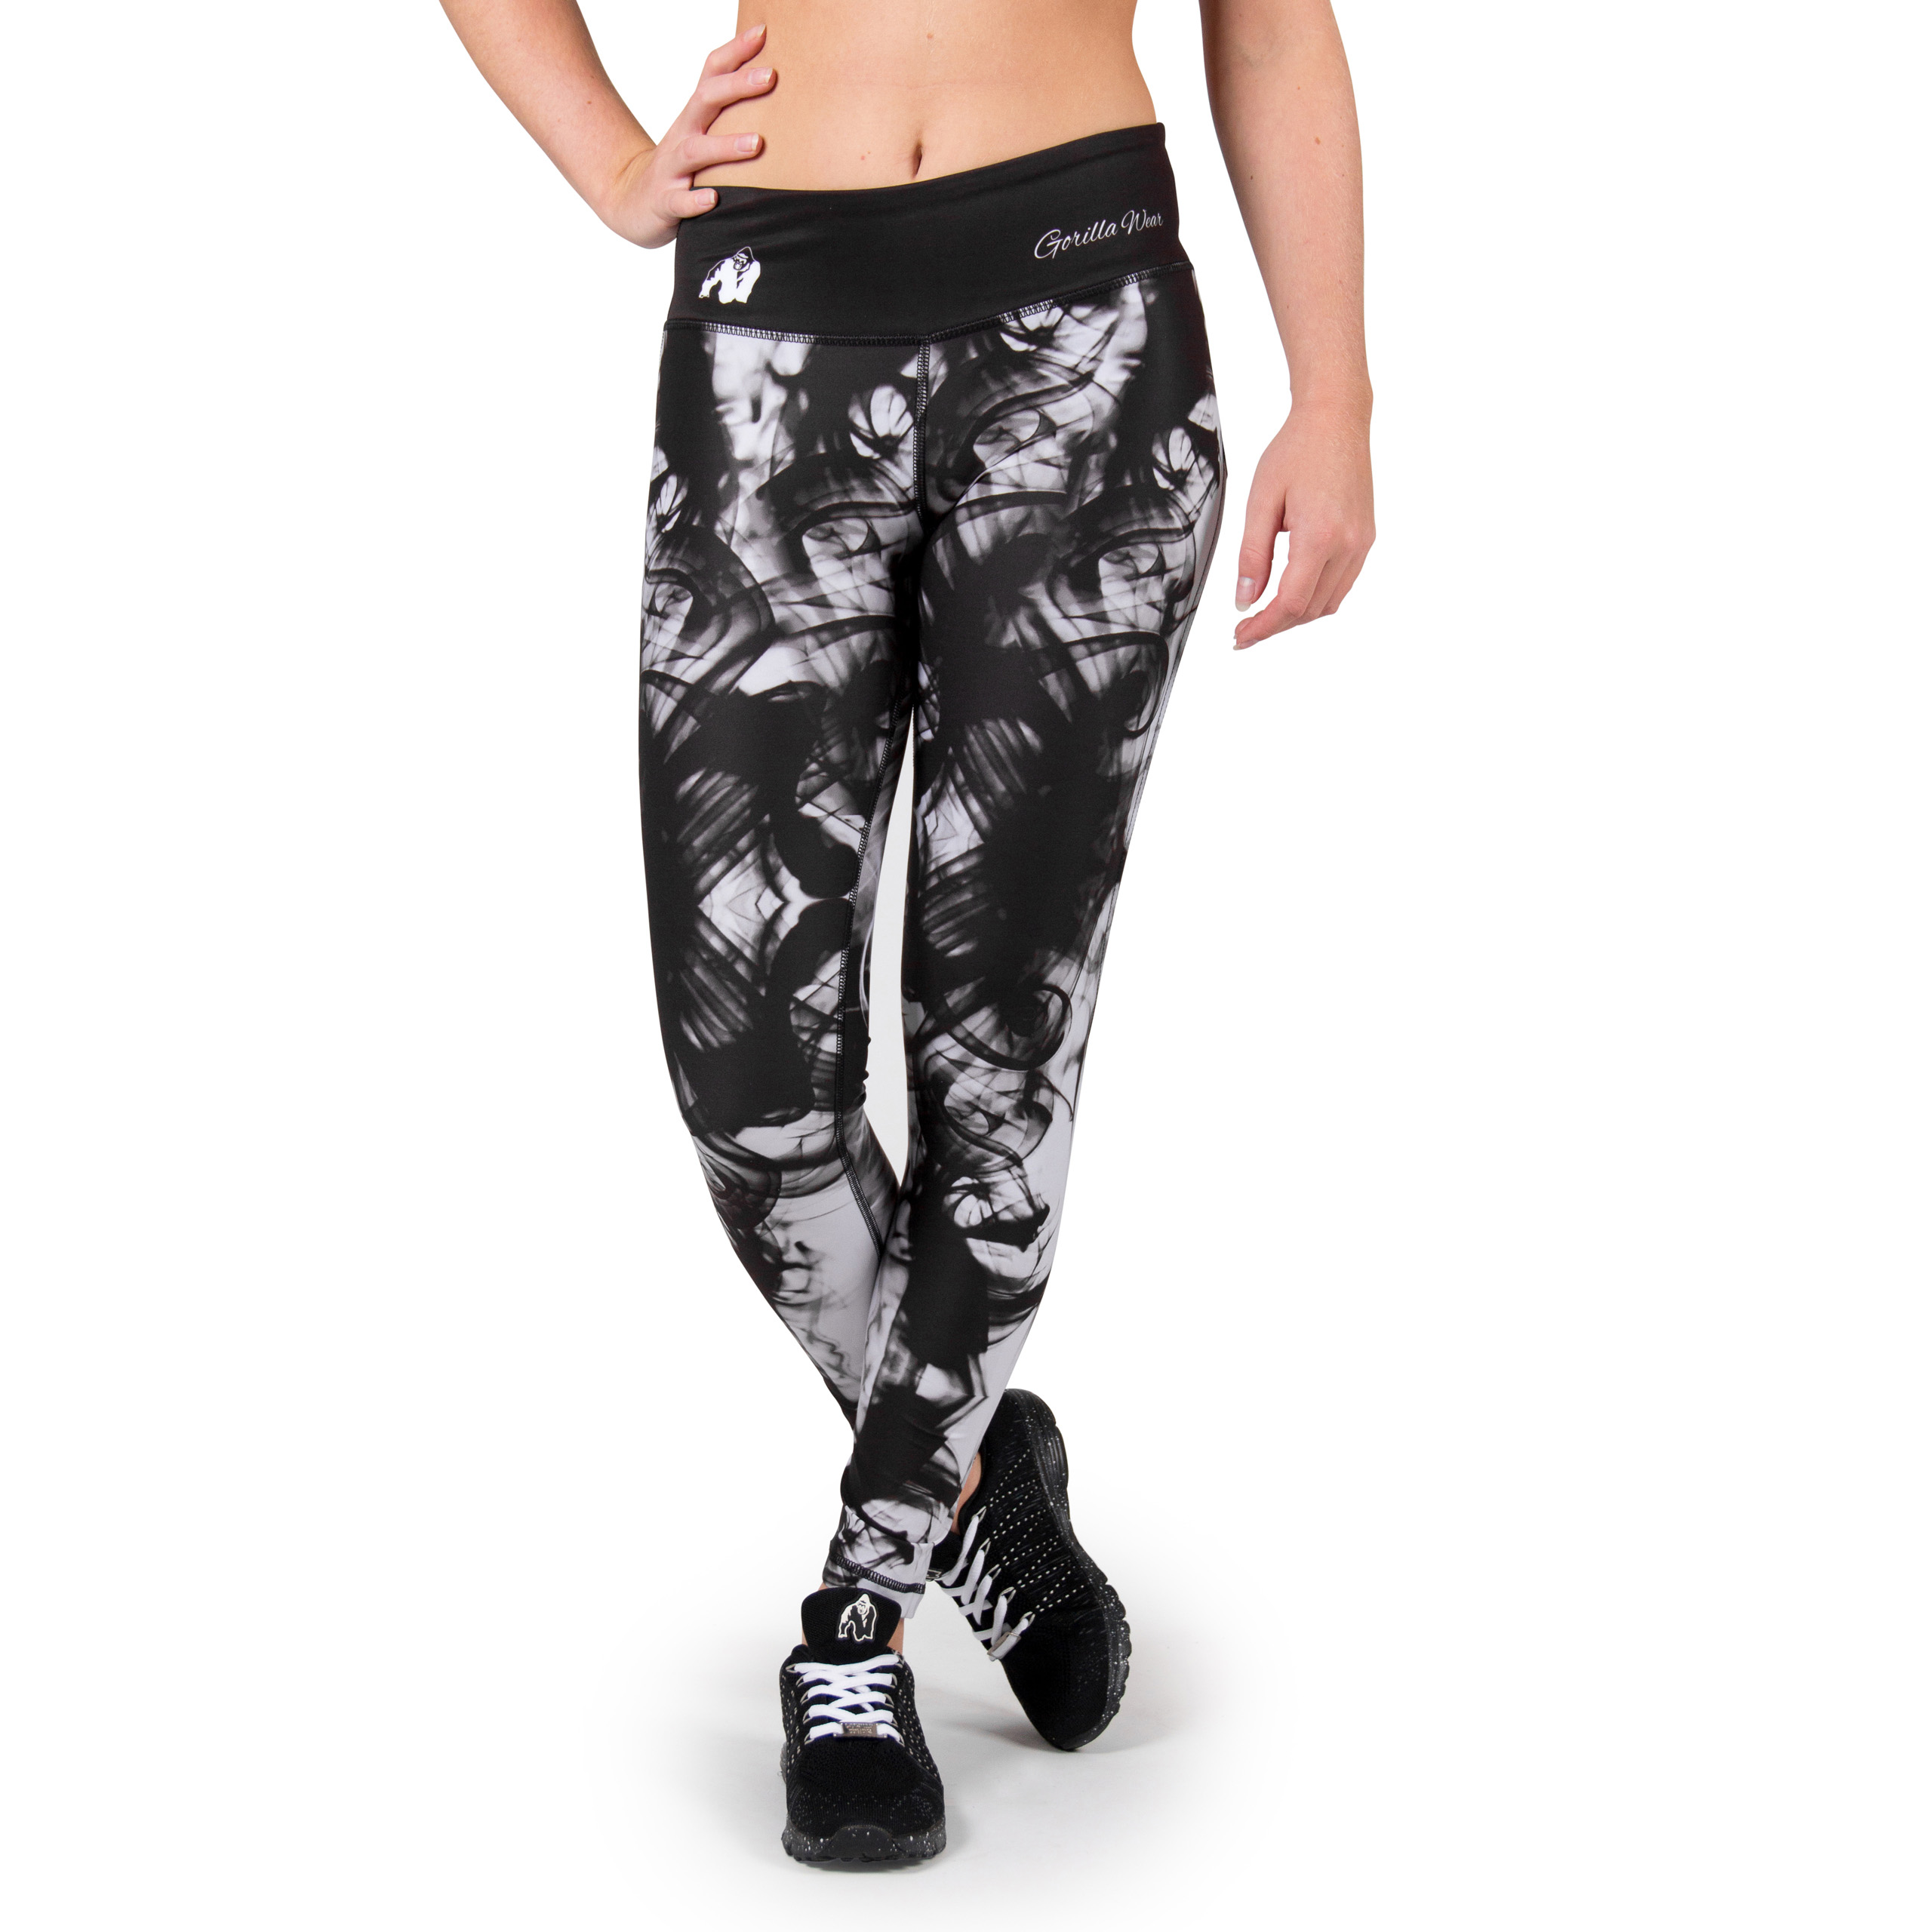 Sportlegging Vrouwen.Sportlegging Zwart Wit Gorilla Wear Phoenix Tights